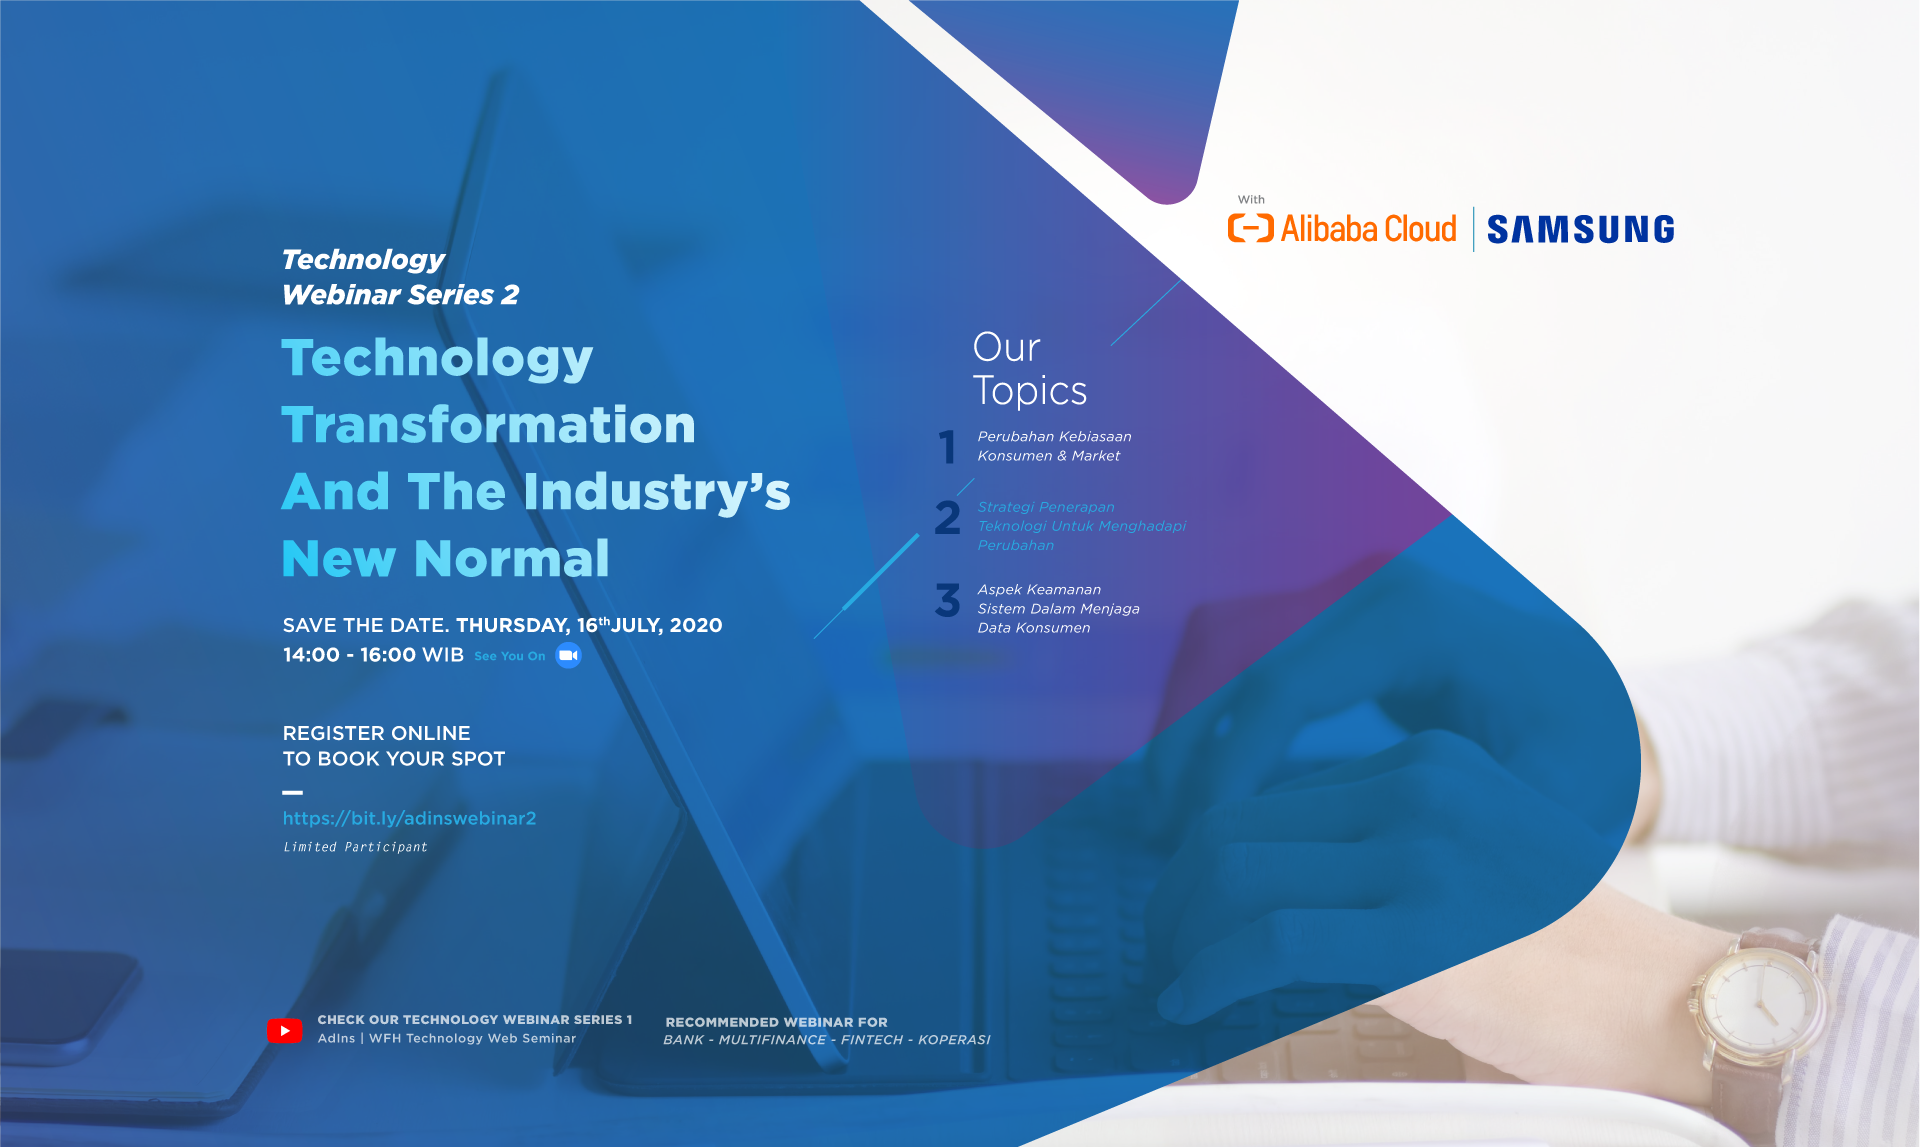 AdIns Technology Webinar Series 2 : Technology Transformation And The Industry's New Normal